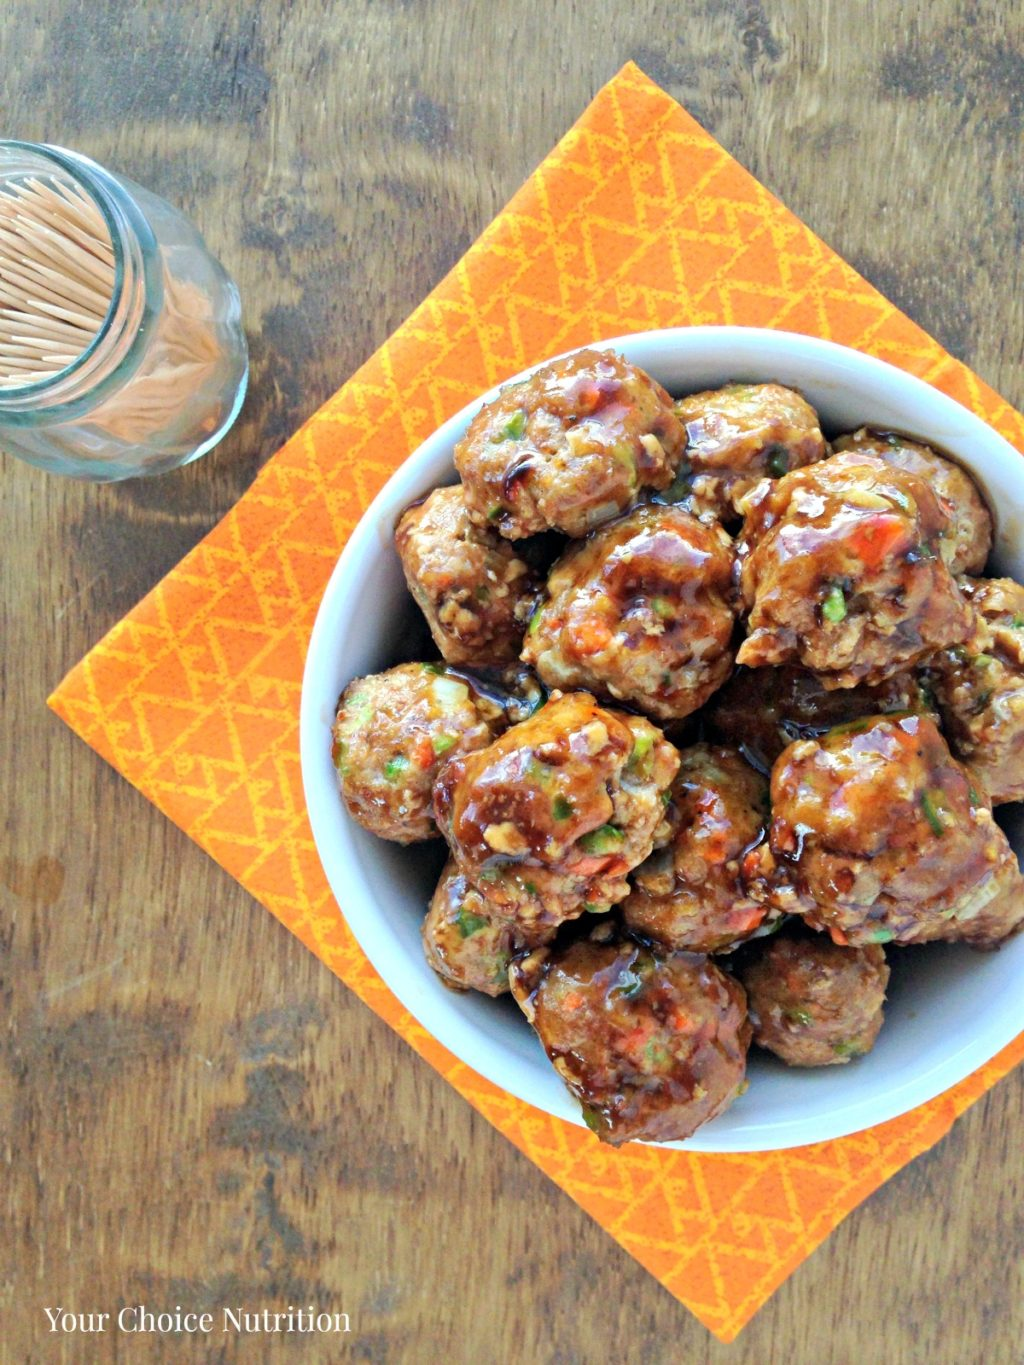 Discussion on this topic: Lean Meatballs with Teriyaki Sauce, lean-meatballs-with-teriyaki-sauce/